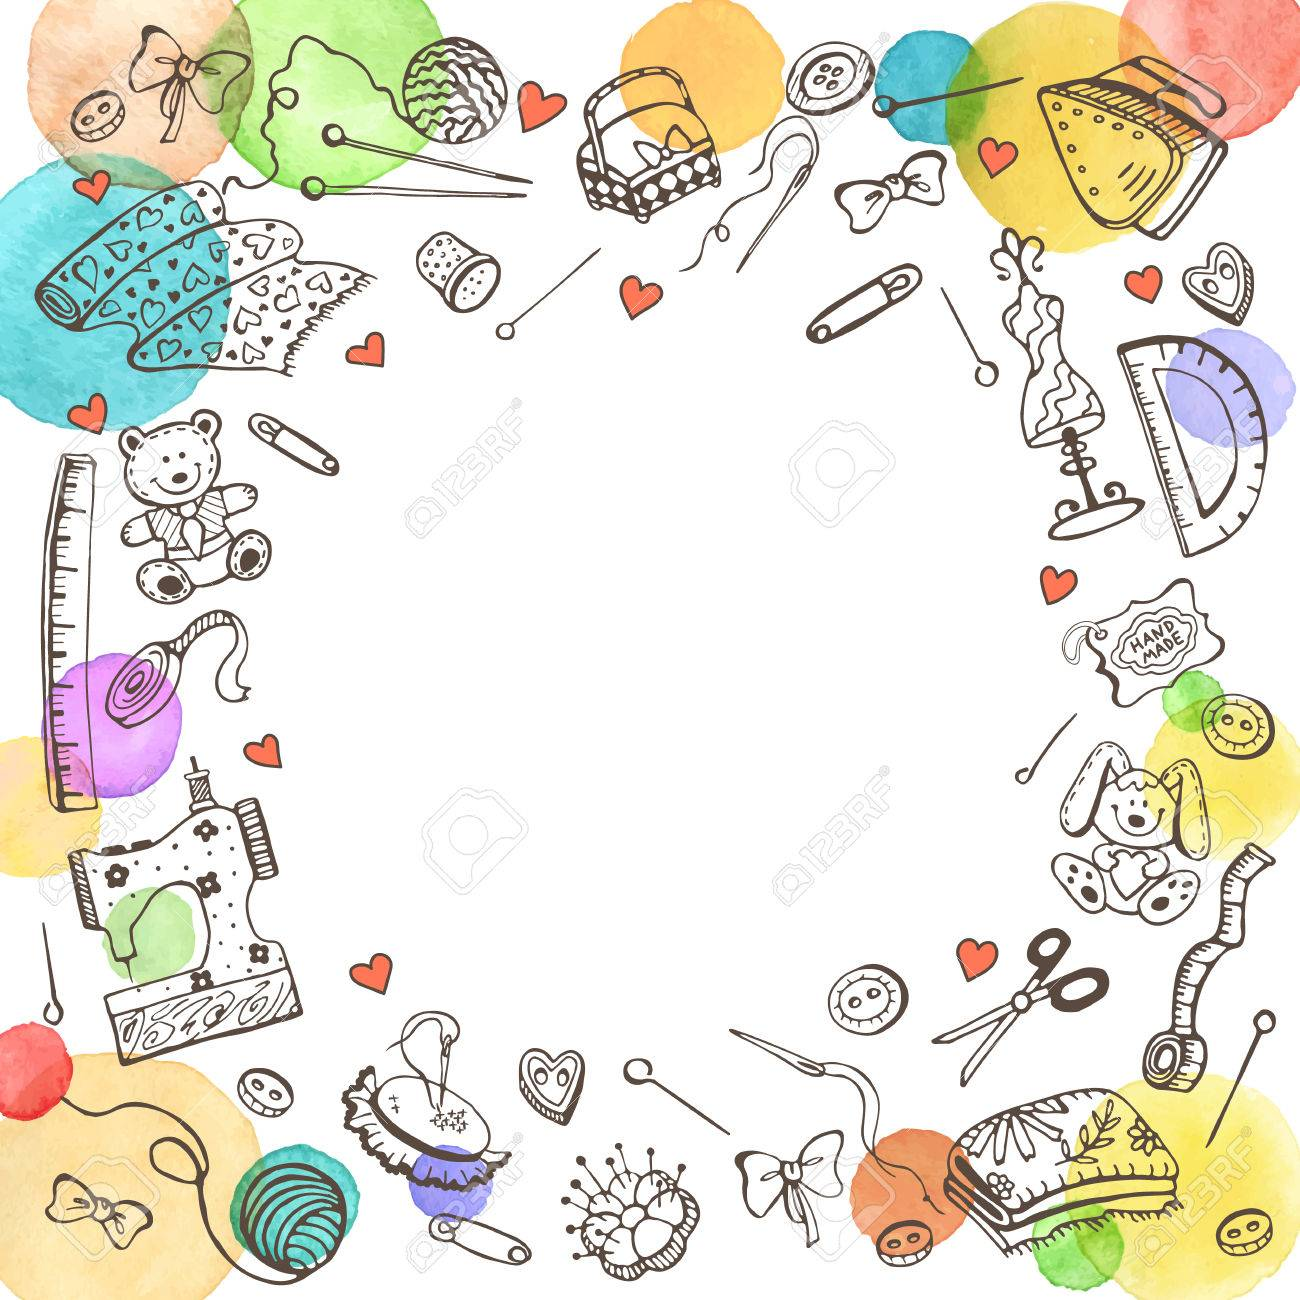 Decorative Round Frame From Craft Tools Doodle Illustration